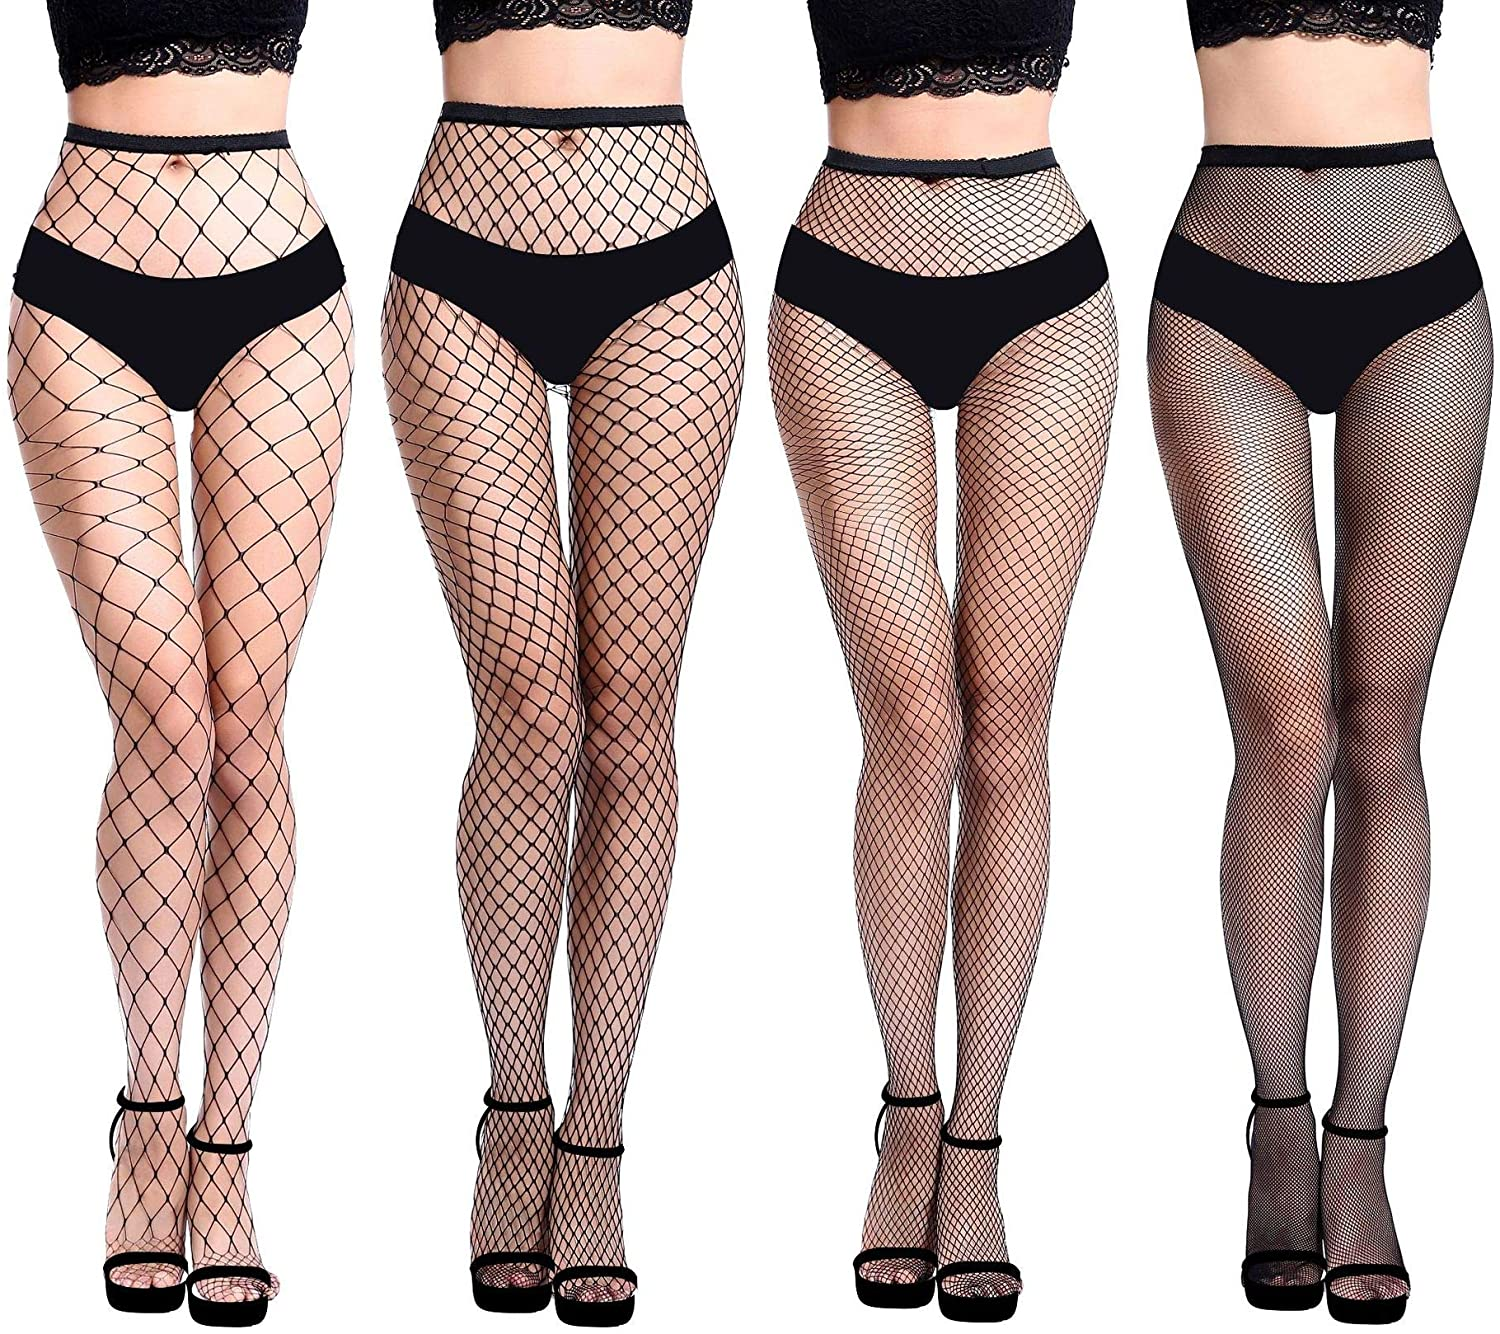 Refamaee High Waist Tights Thigh High Stockings Pantyhose Fishnet Stockings 4pcs